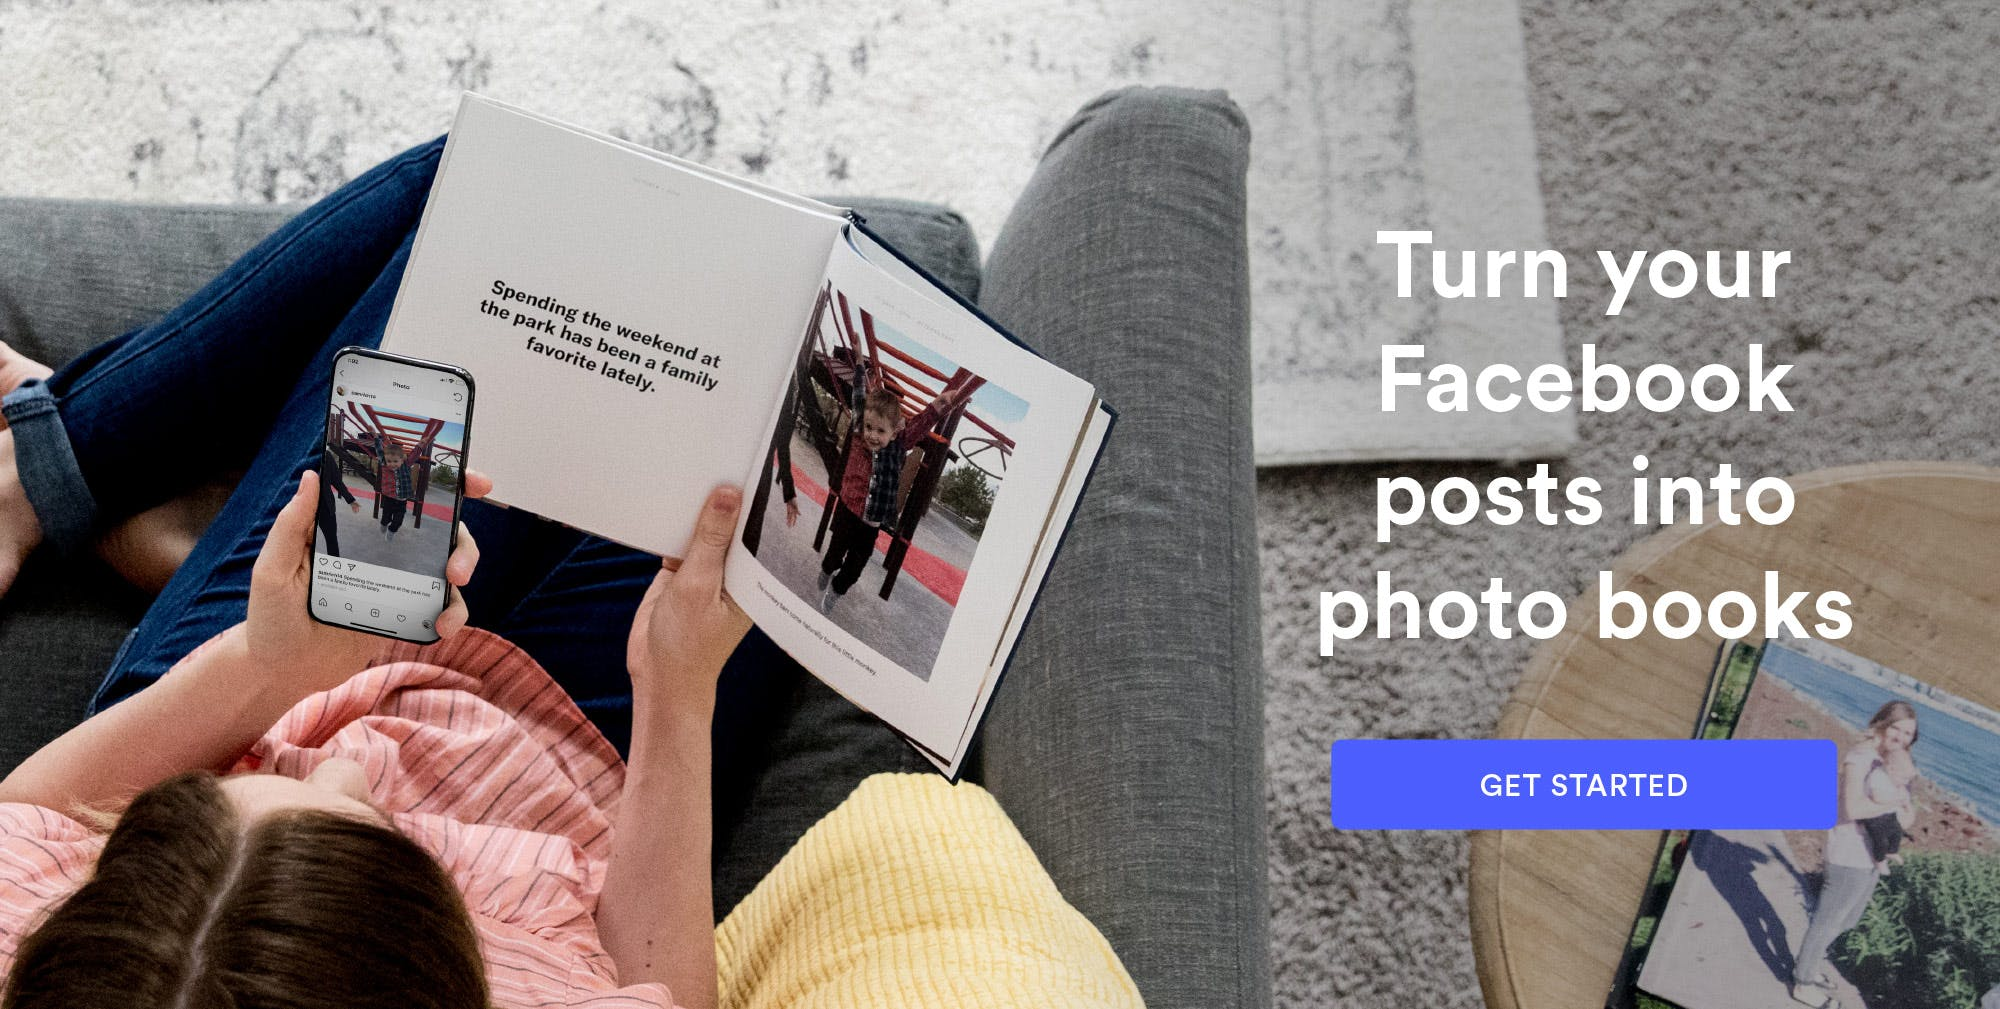 Turn your Instagram posts into photo books.